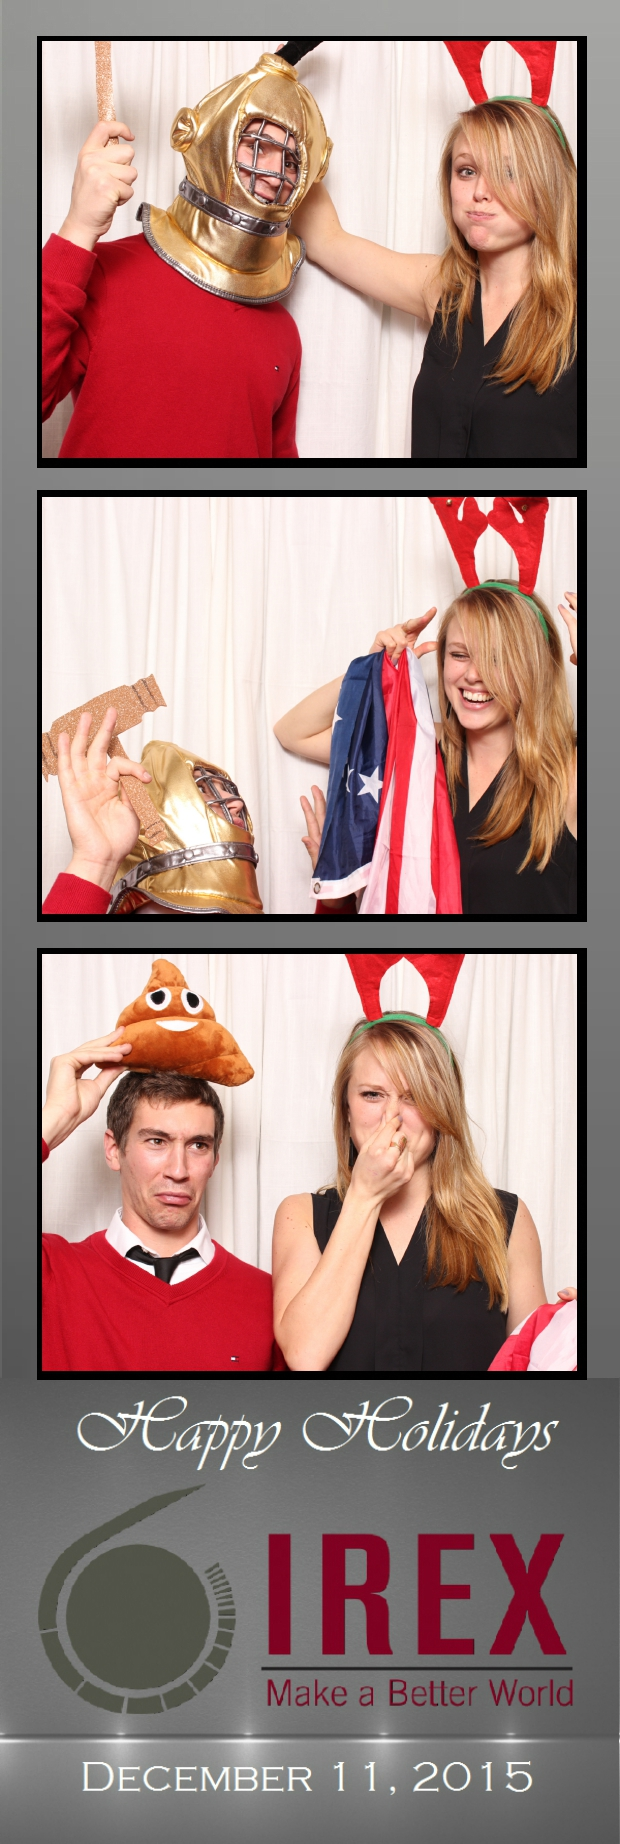 Guest House Events Photo Booth Strips IREX (68).jpg